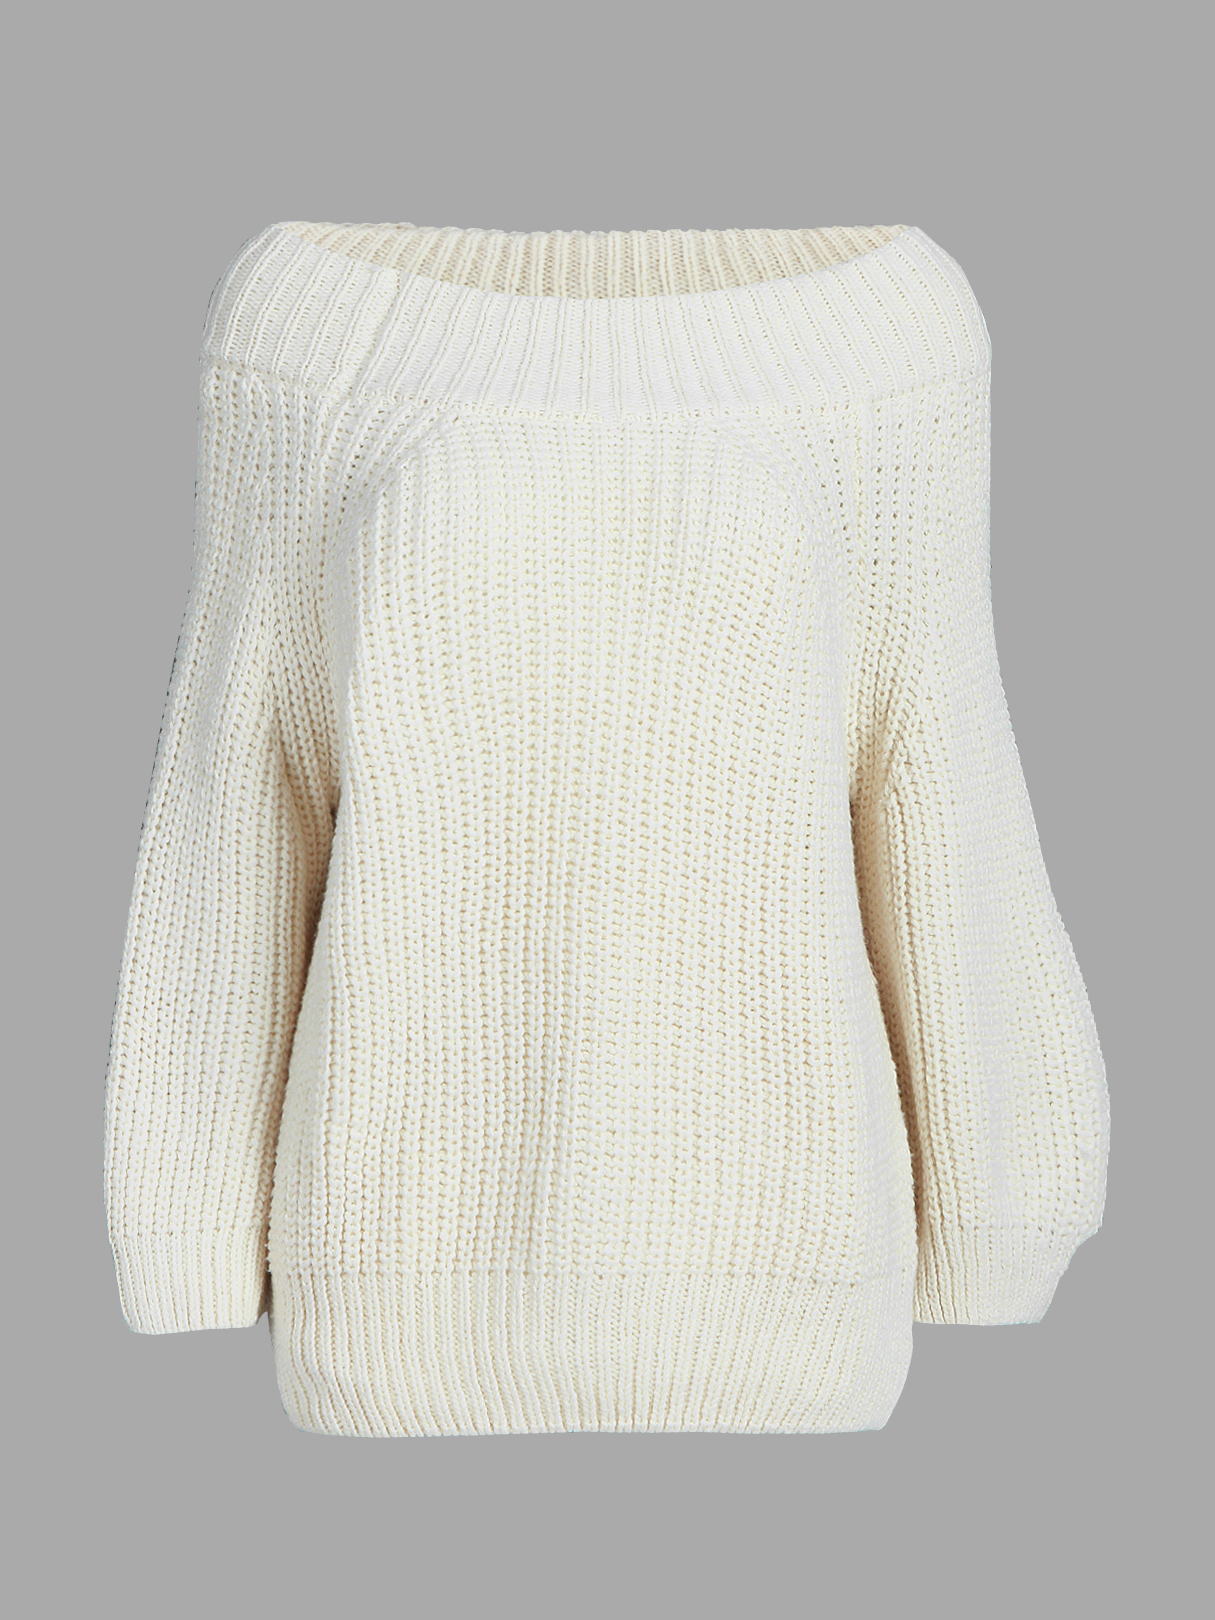 Classic White Off Shoulder Long Sleeves Knit Sweater